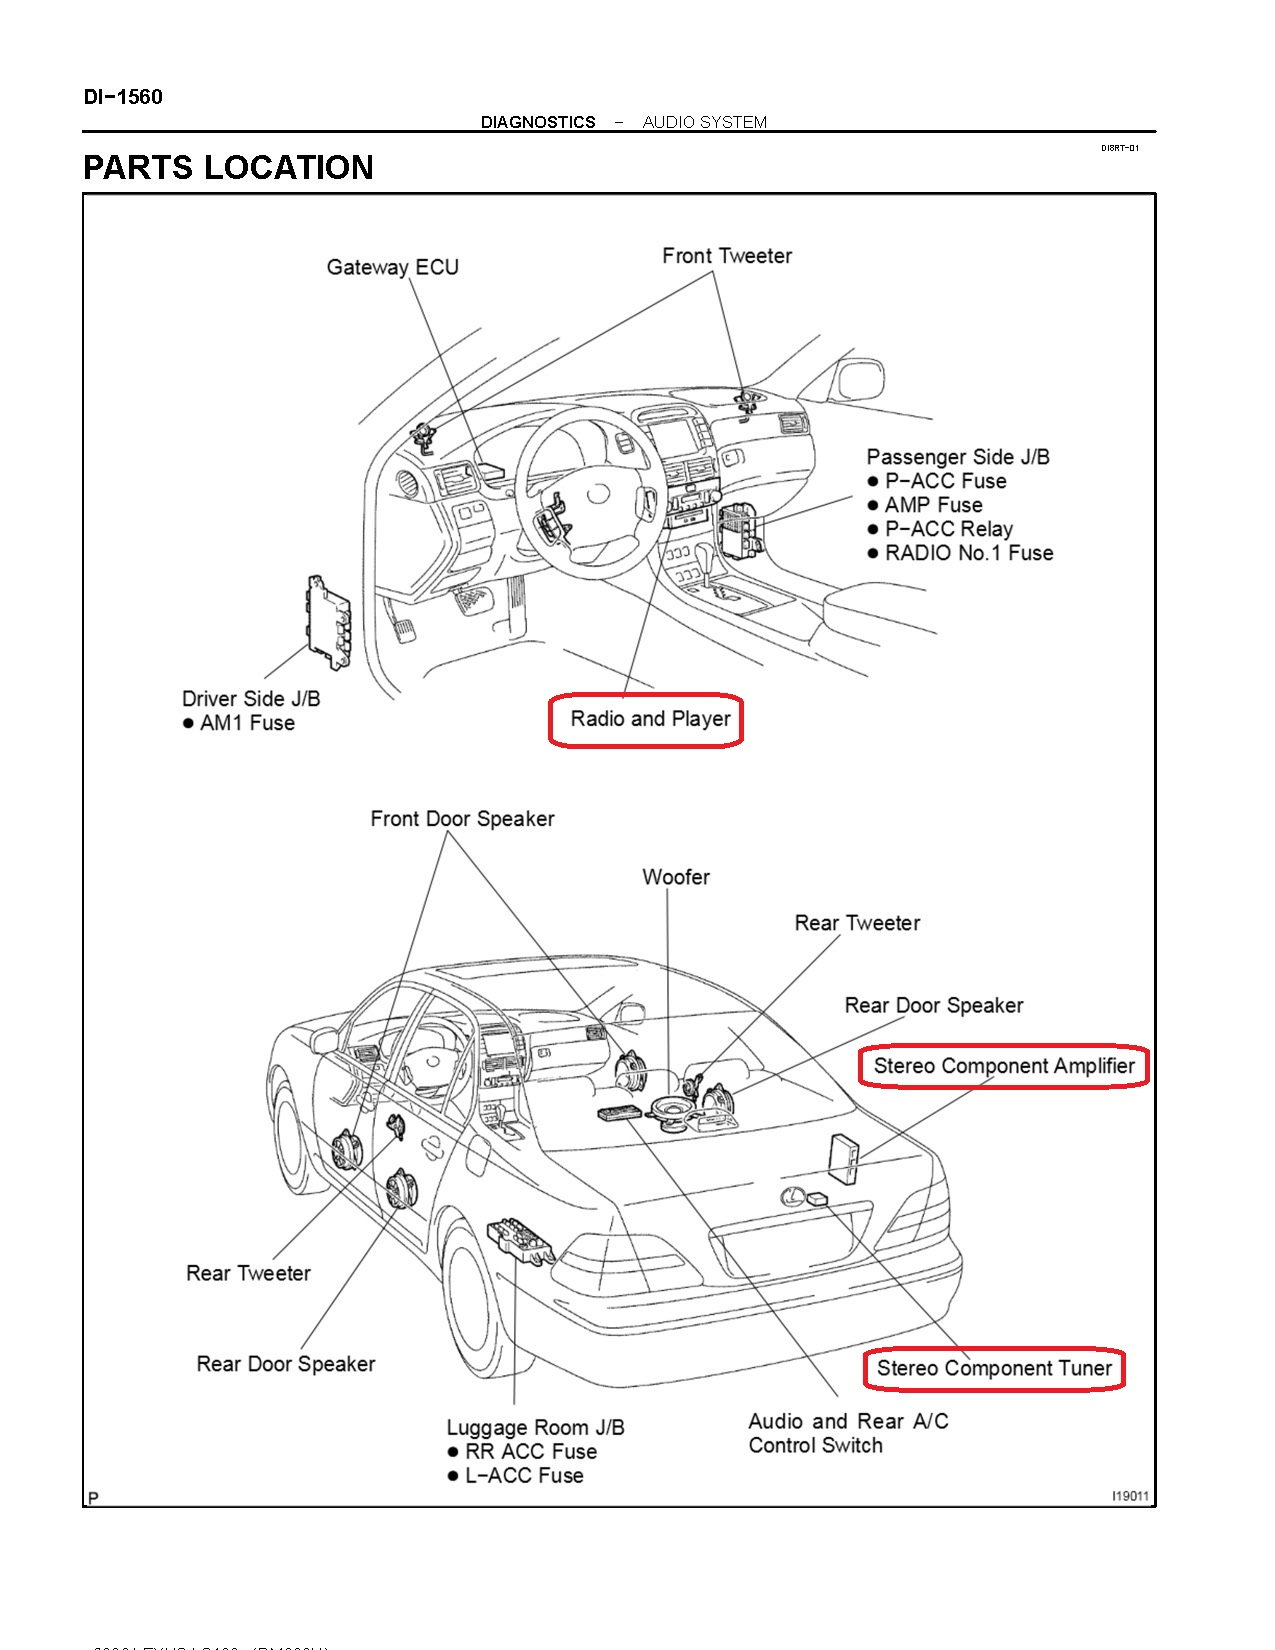 hight resolution of the antenna cable from the rear window is connected to the stereo component tuner but it is not shown on the wiring diagram physical locations of the